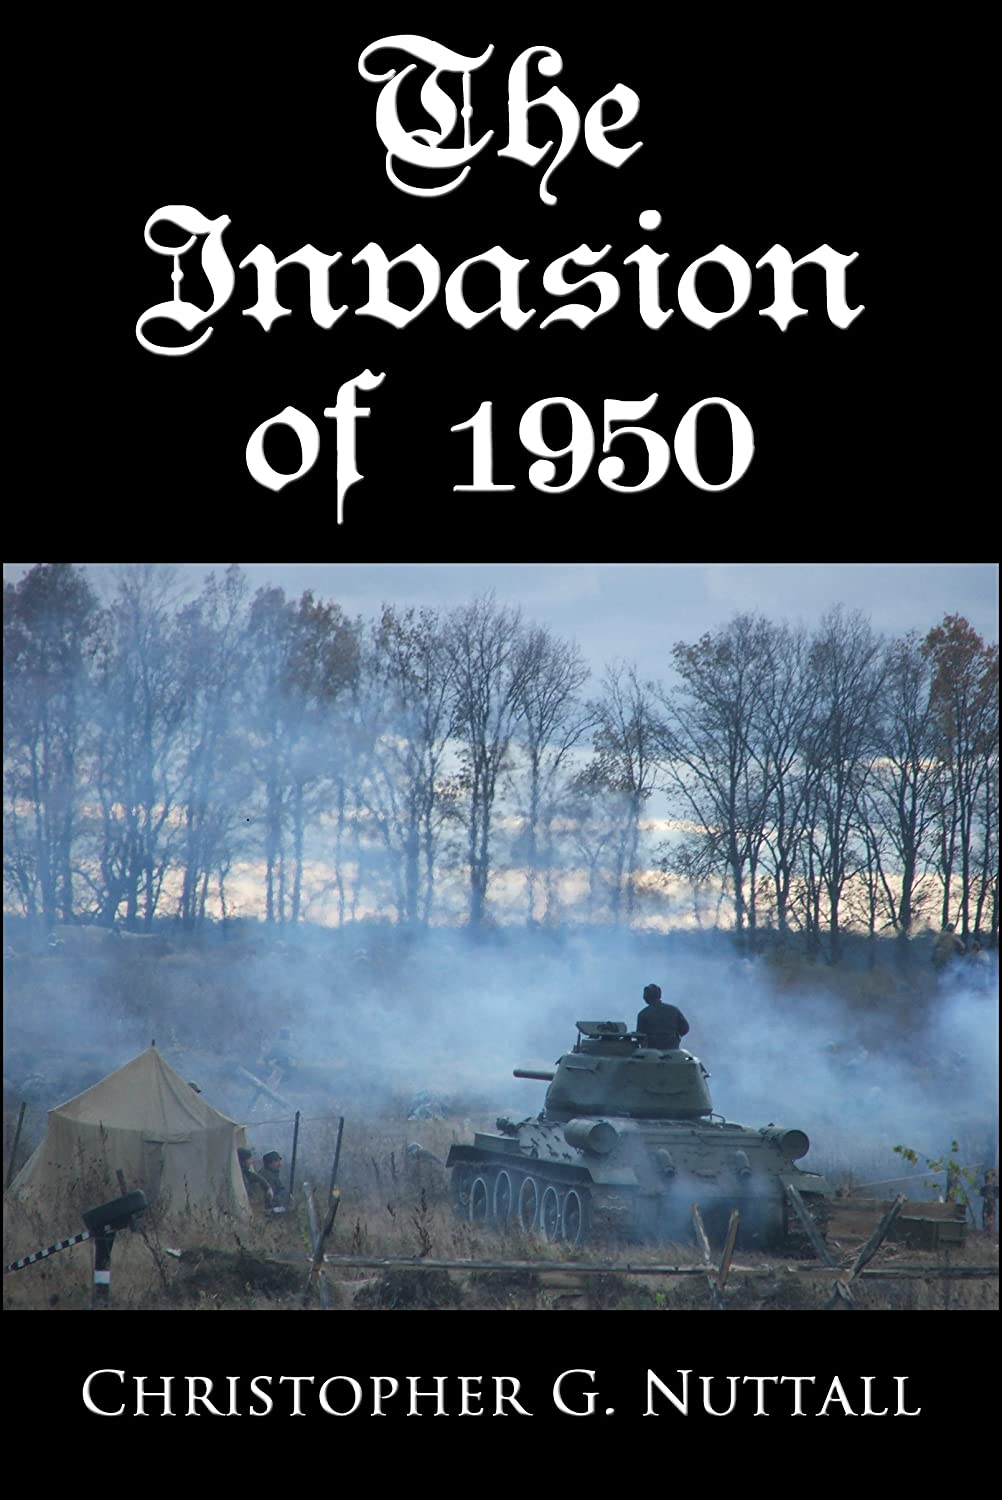 The Invasion of 1950  - Christopher Nuttall